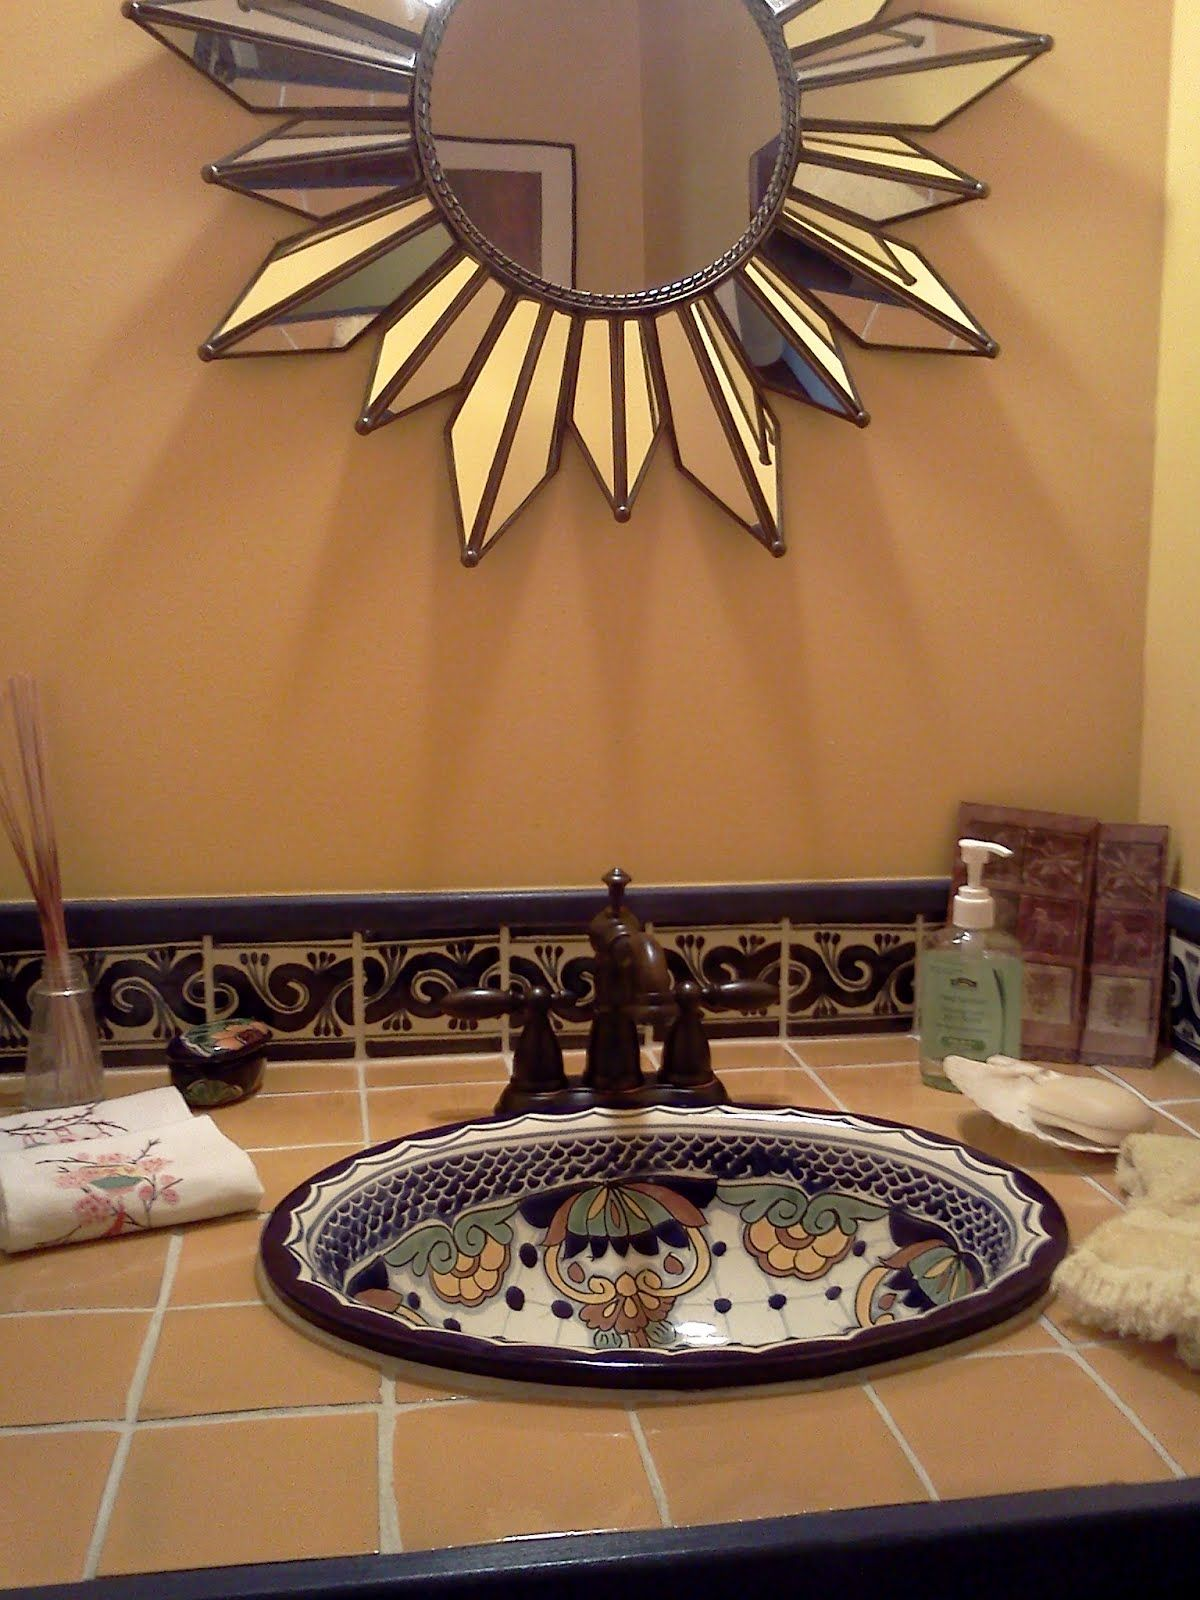 Bathroom sink and tile in talavera ba os pinterest for Banos rusticos mexicanos